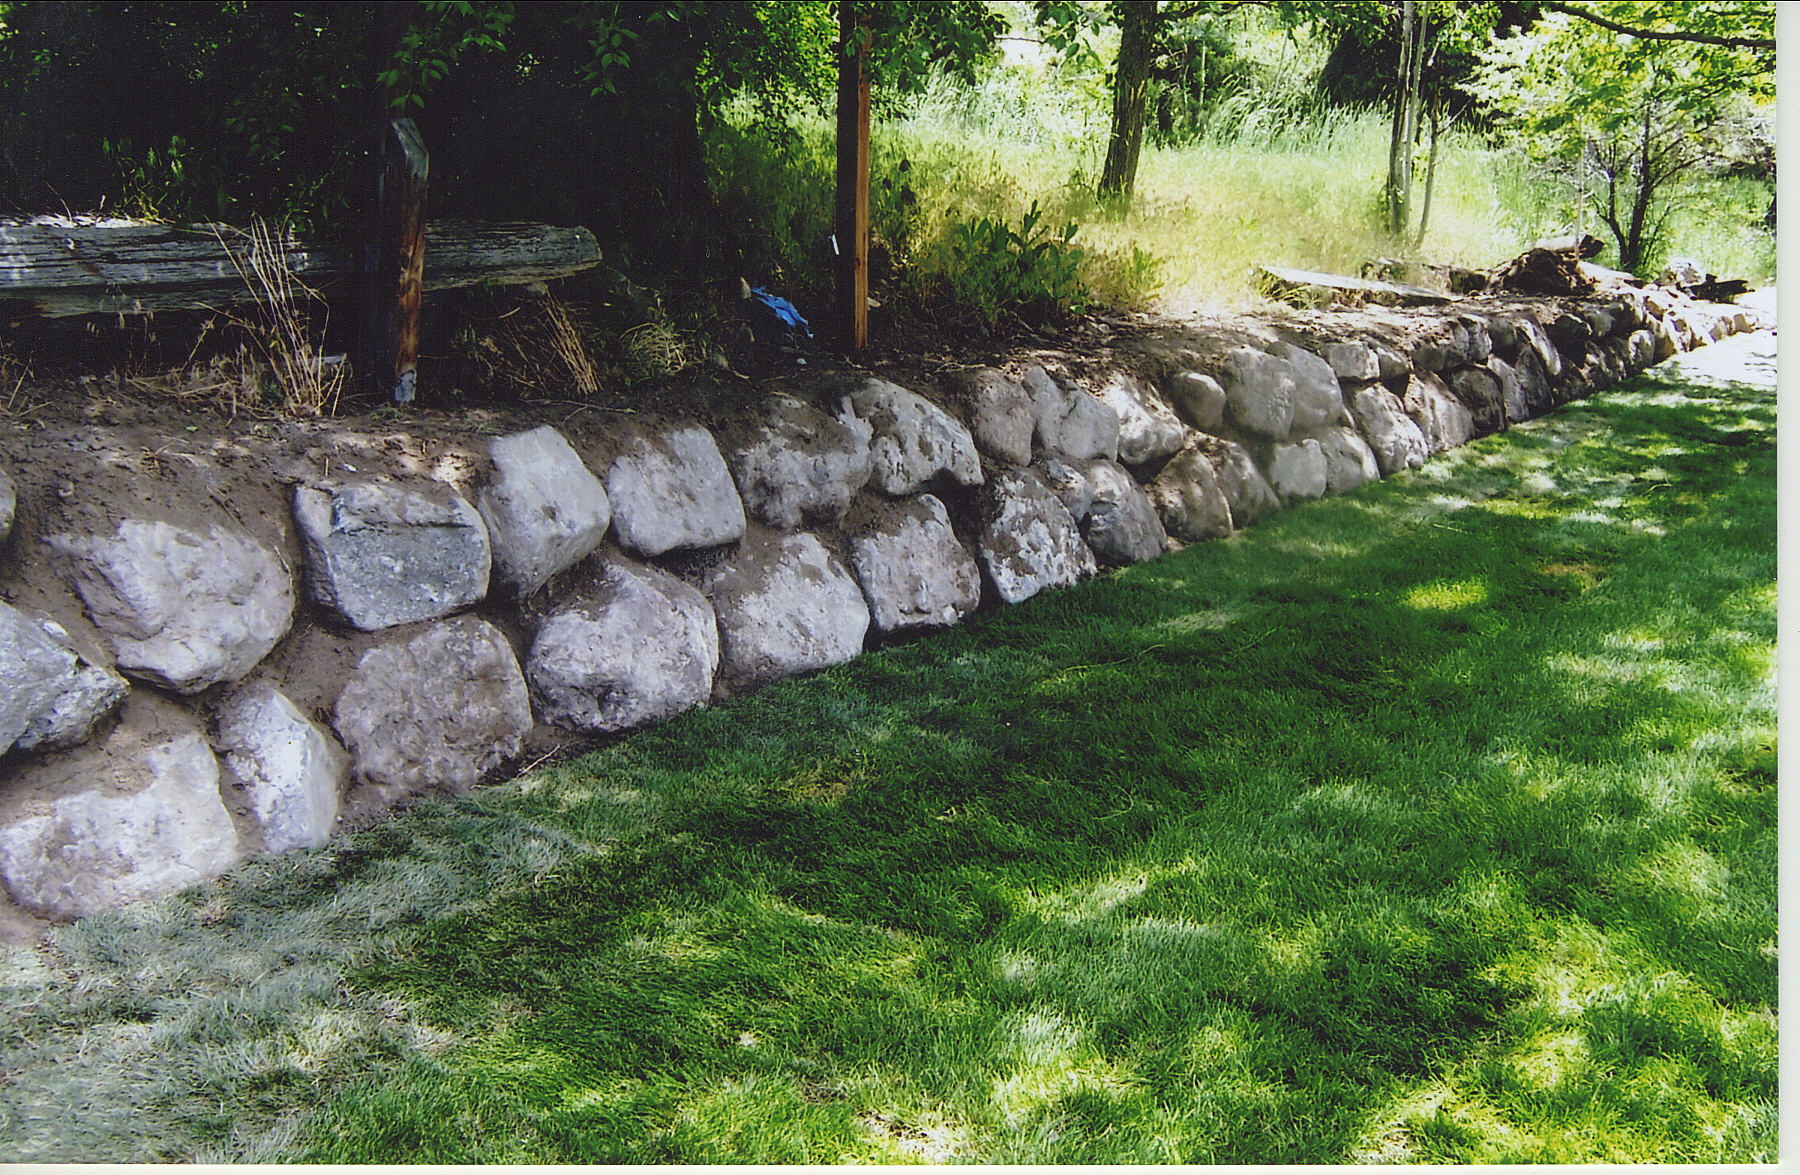 How to build a natural stone retaining wall the right way for Natural rock landscaping